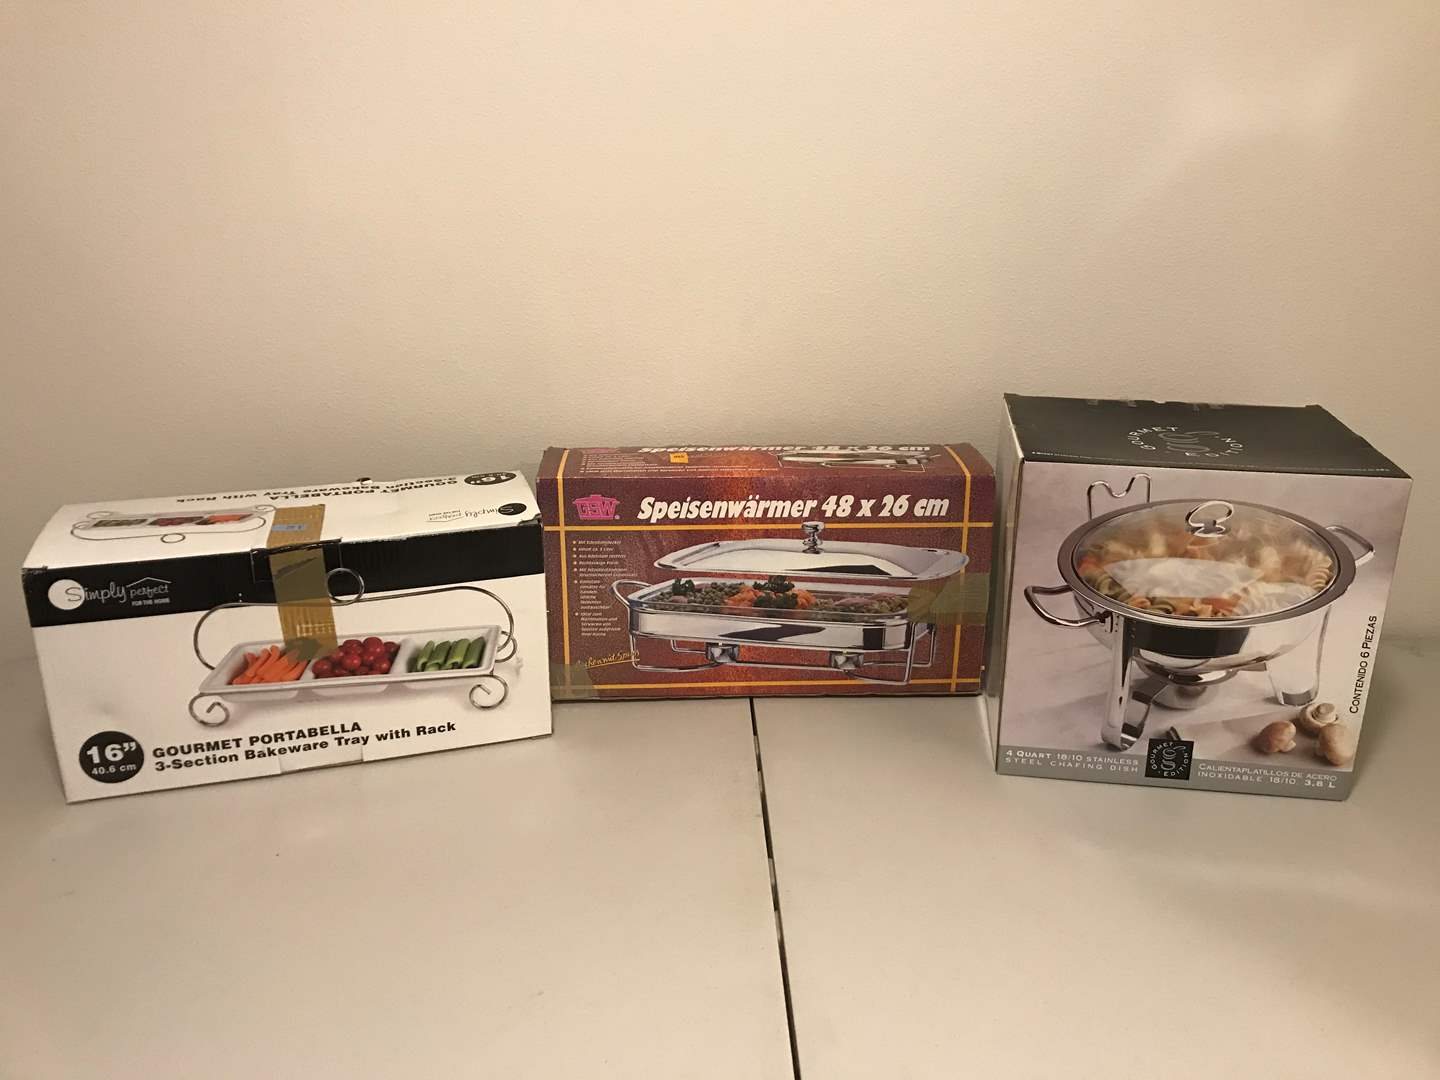 Lot # 287 - New in Box Simply Perfect Serving Tray, Gourmet Edition 4-Quart Chafing Dish, Speisenwarmer Dish Warmer (main image)